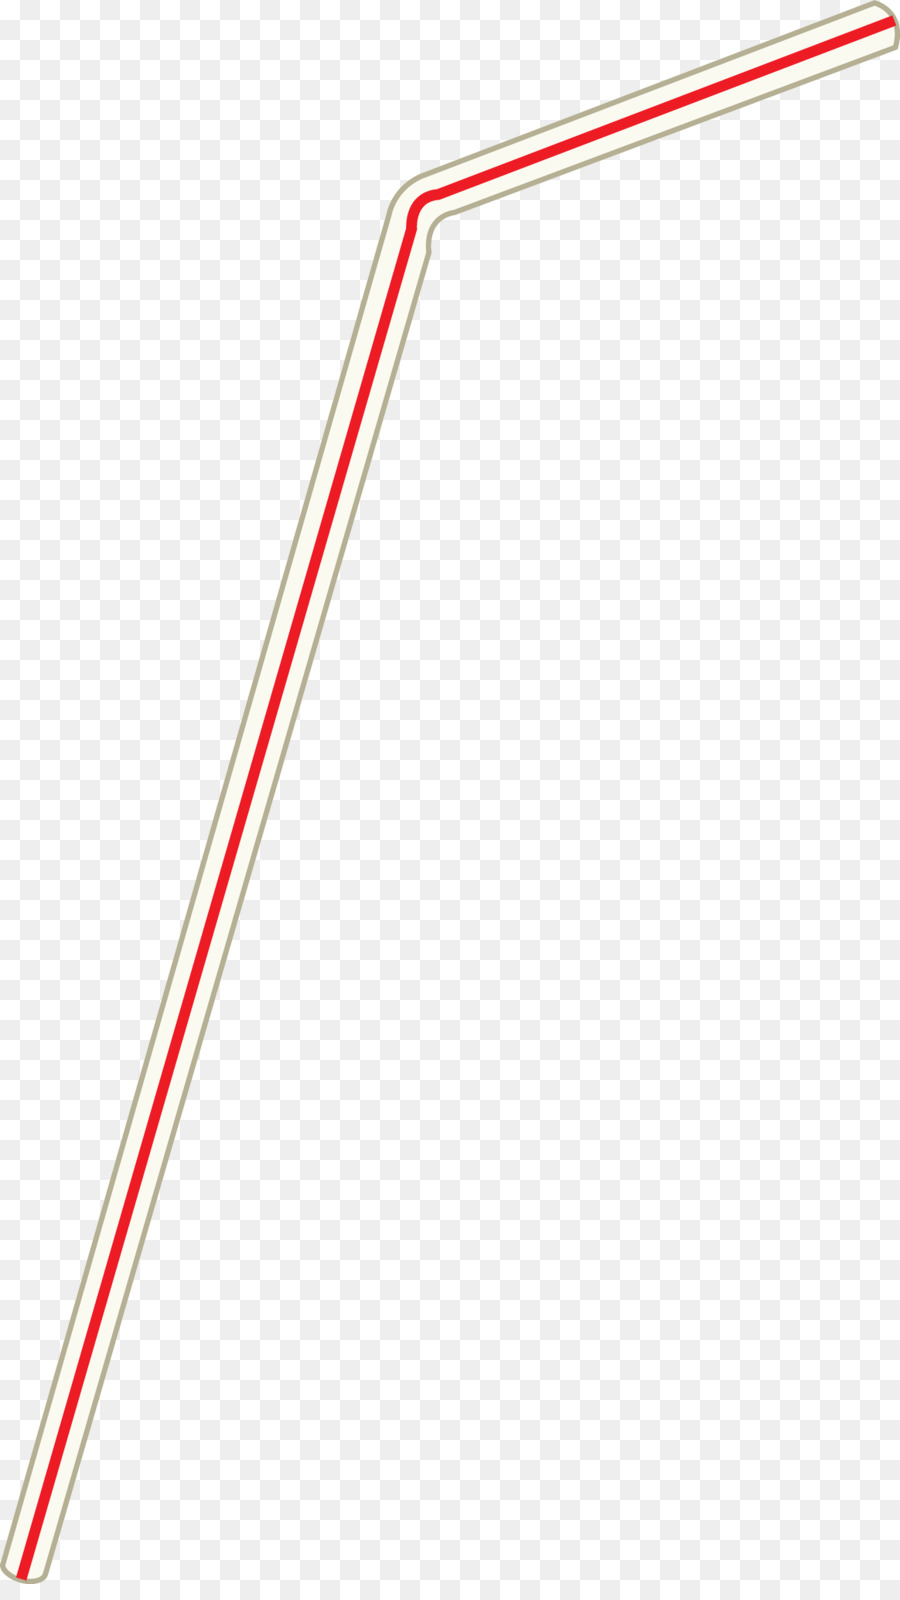 Drinking Straw Png & Free Drinking Straw.png Transparent.